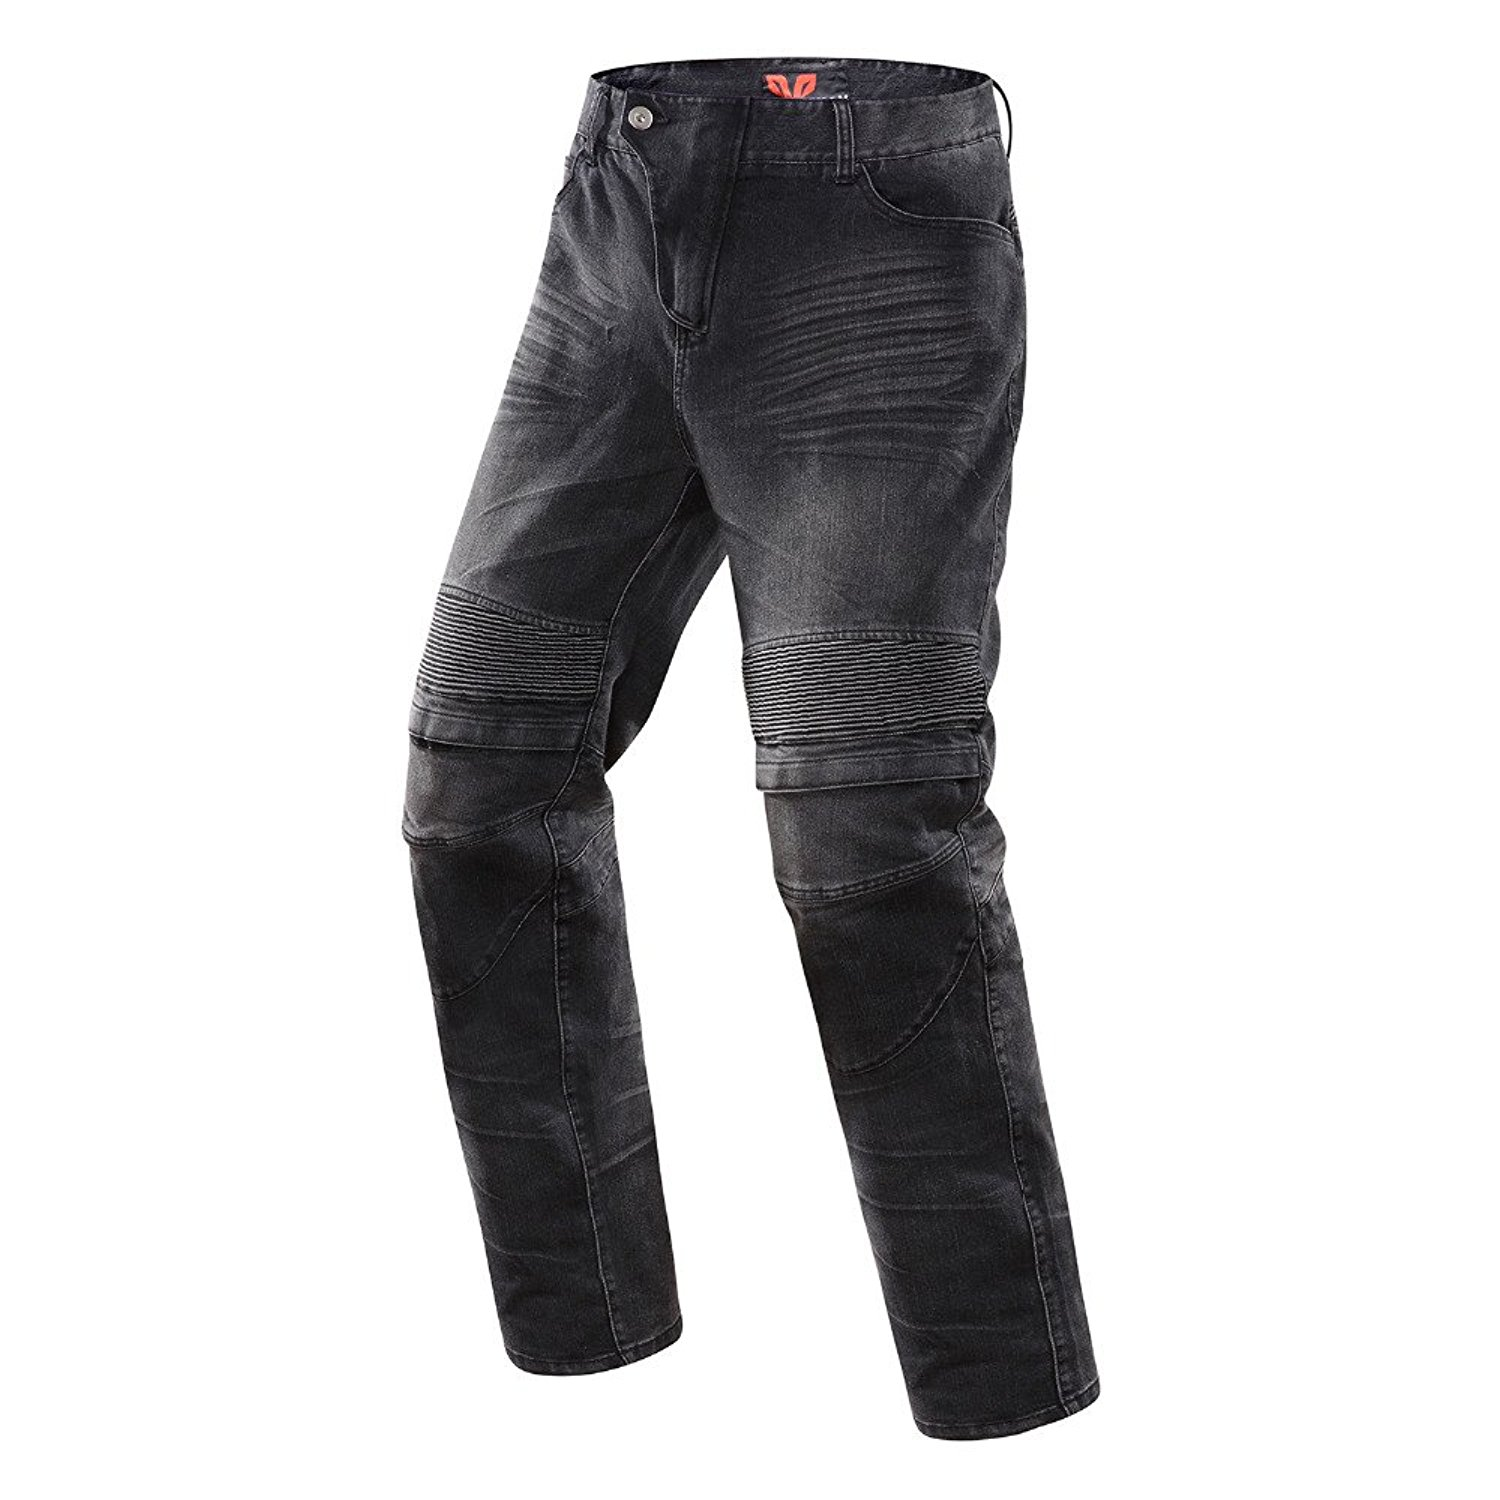 8f0dfae783e Motorcycle Jeans Riding Jersey Riding Pants Jeans Casual Pants Knee  Protective Windproof Motorcycle Racing Jeans